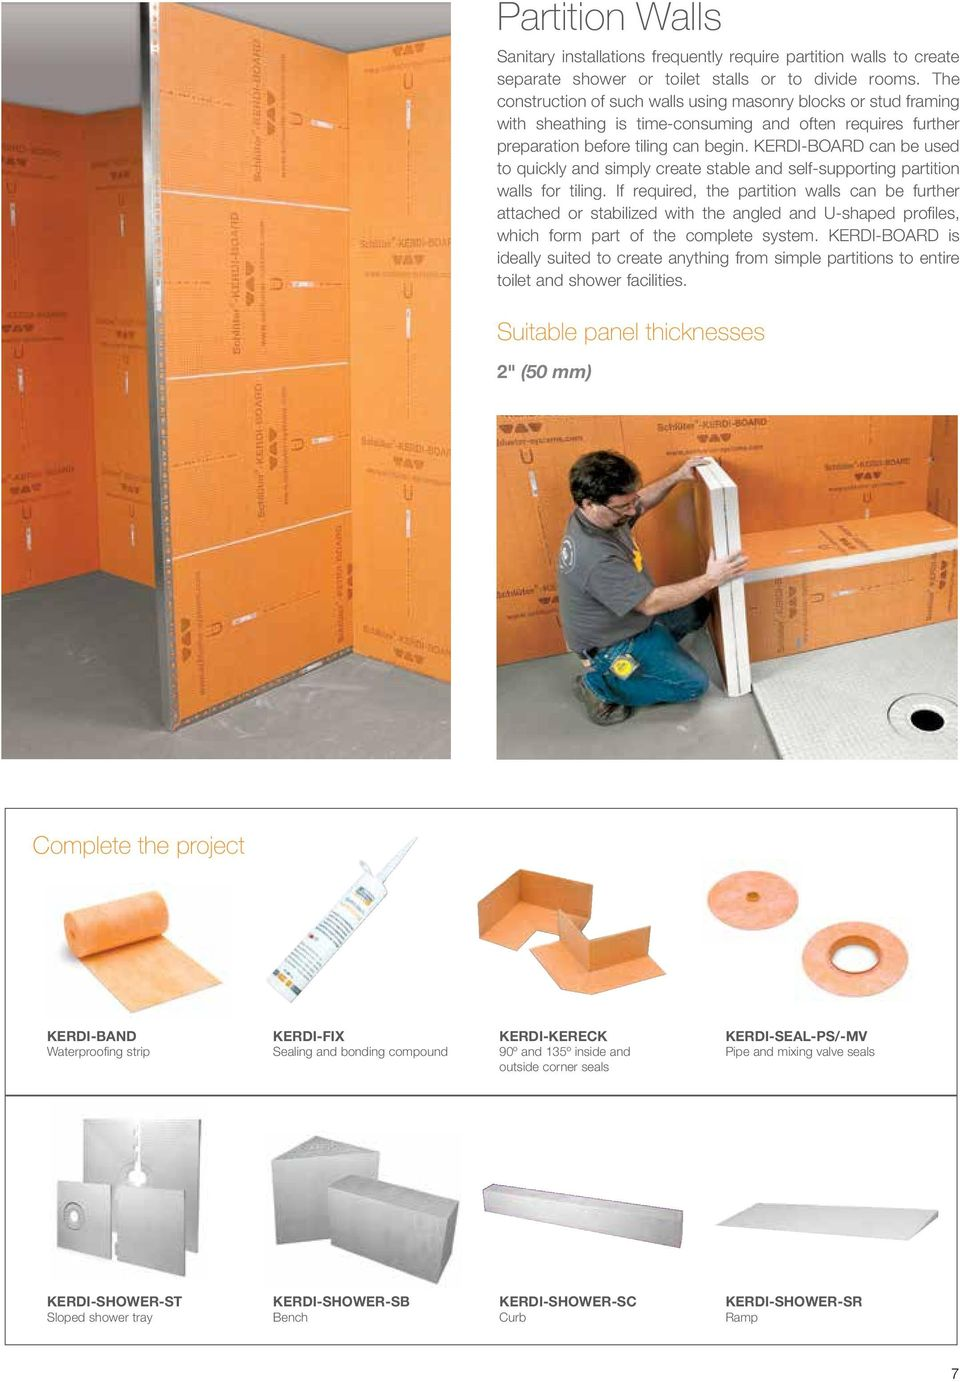 KERDI-BOARD can be used to quickly and simply create stable and self-supporting partition walls for tiling.